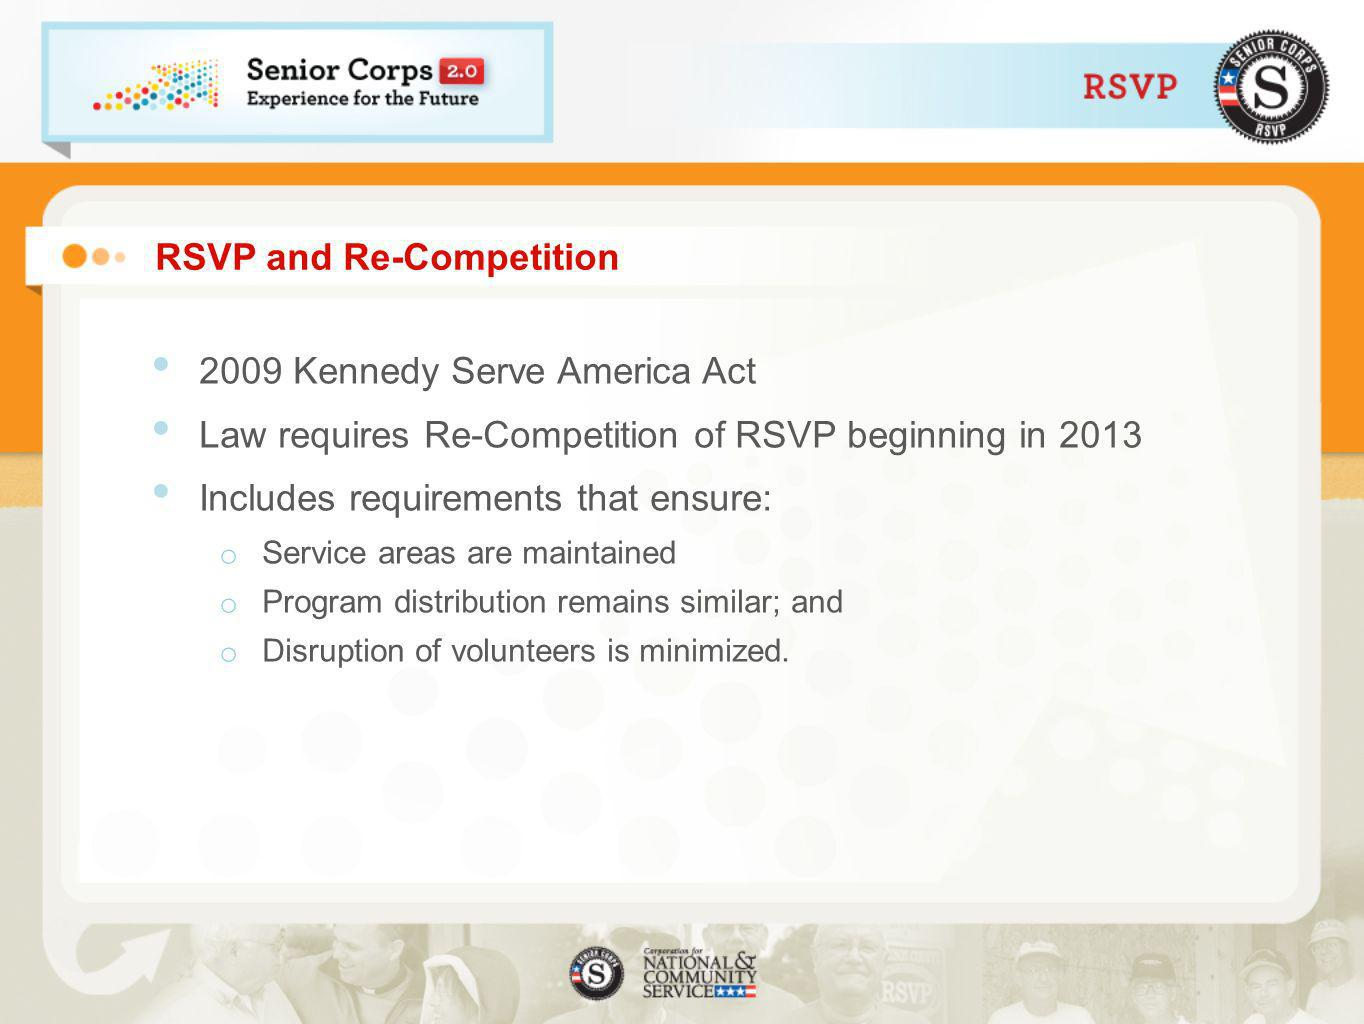 RSVP and Re-Competition 2009 Kennedy Serve America Act Law requires Re-Competition of RSVP beginning in 2013 Includes requirements that ensure: o Service areas are maintained o Program distribution remains similar; and o Disruption of volunteers is minimized.